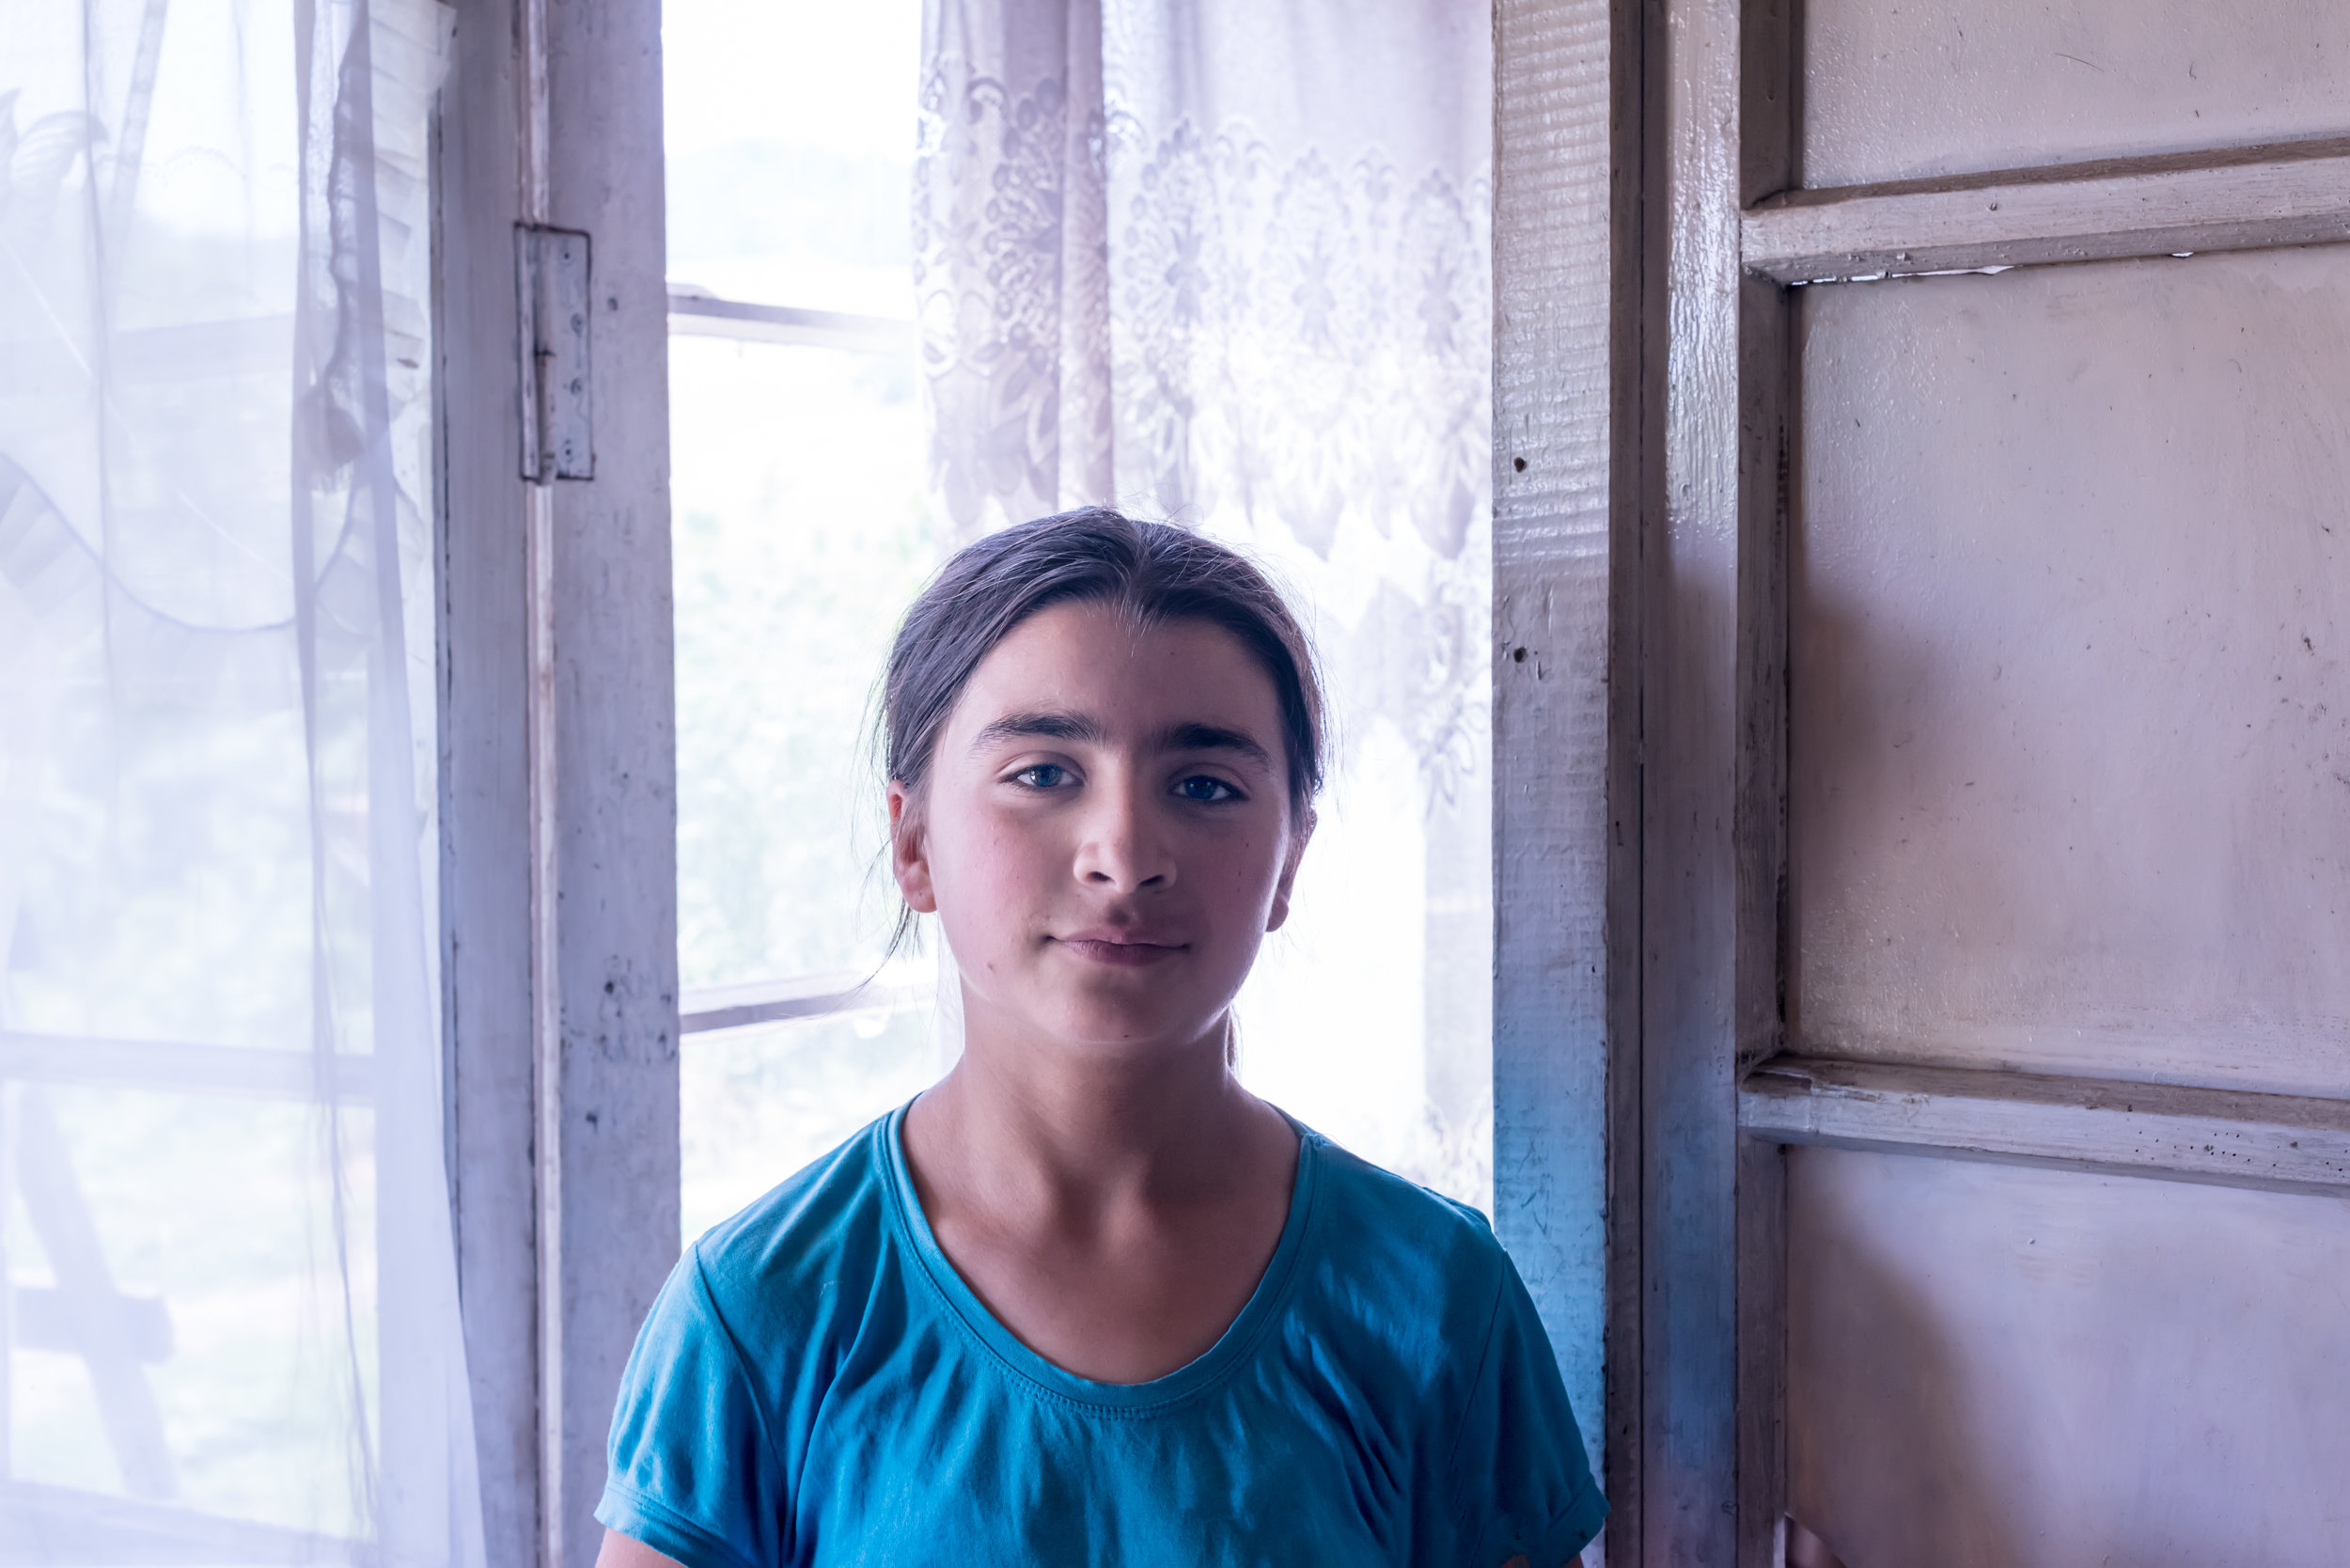 Raising our girls to be smart, empowered women will keep Armenia strong and moving forward.